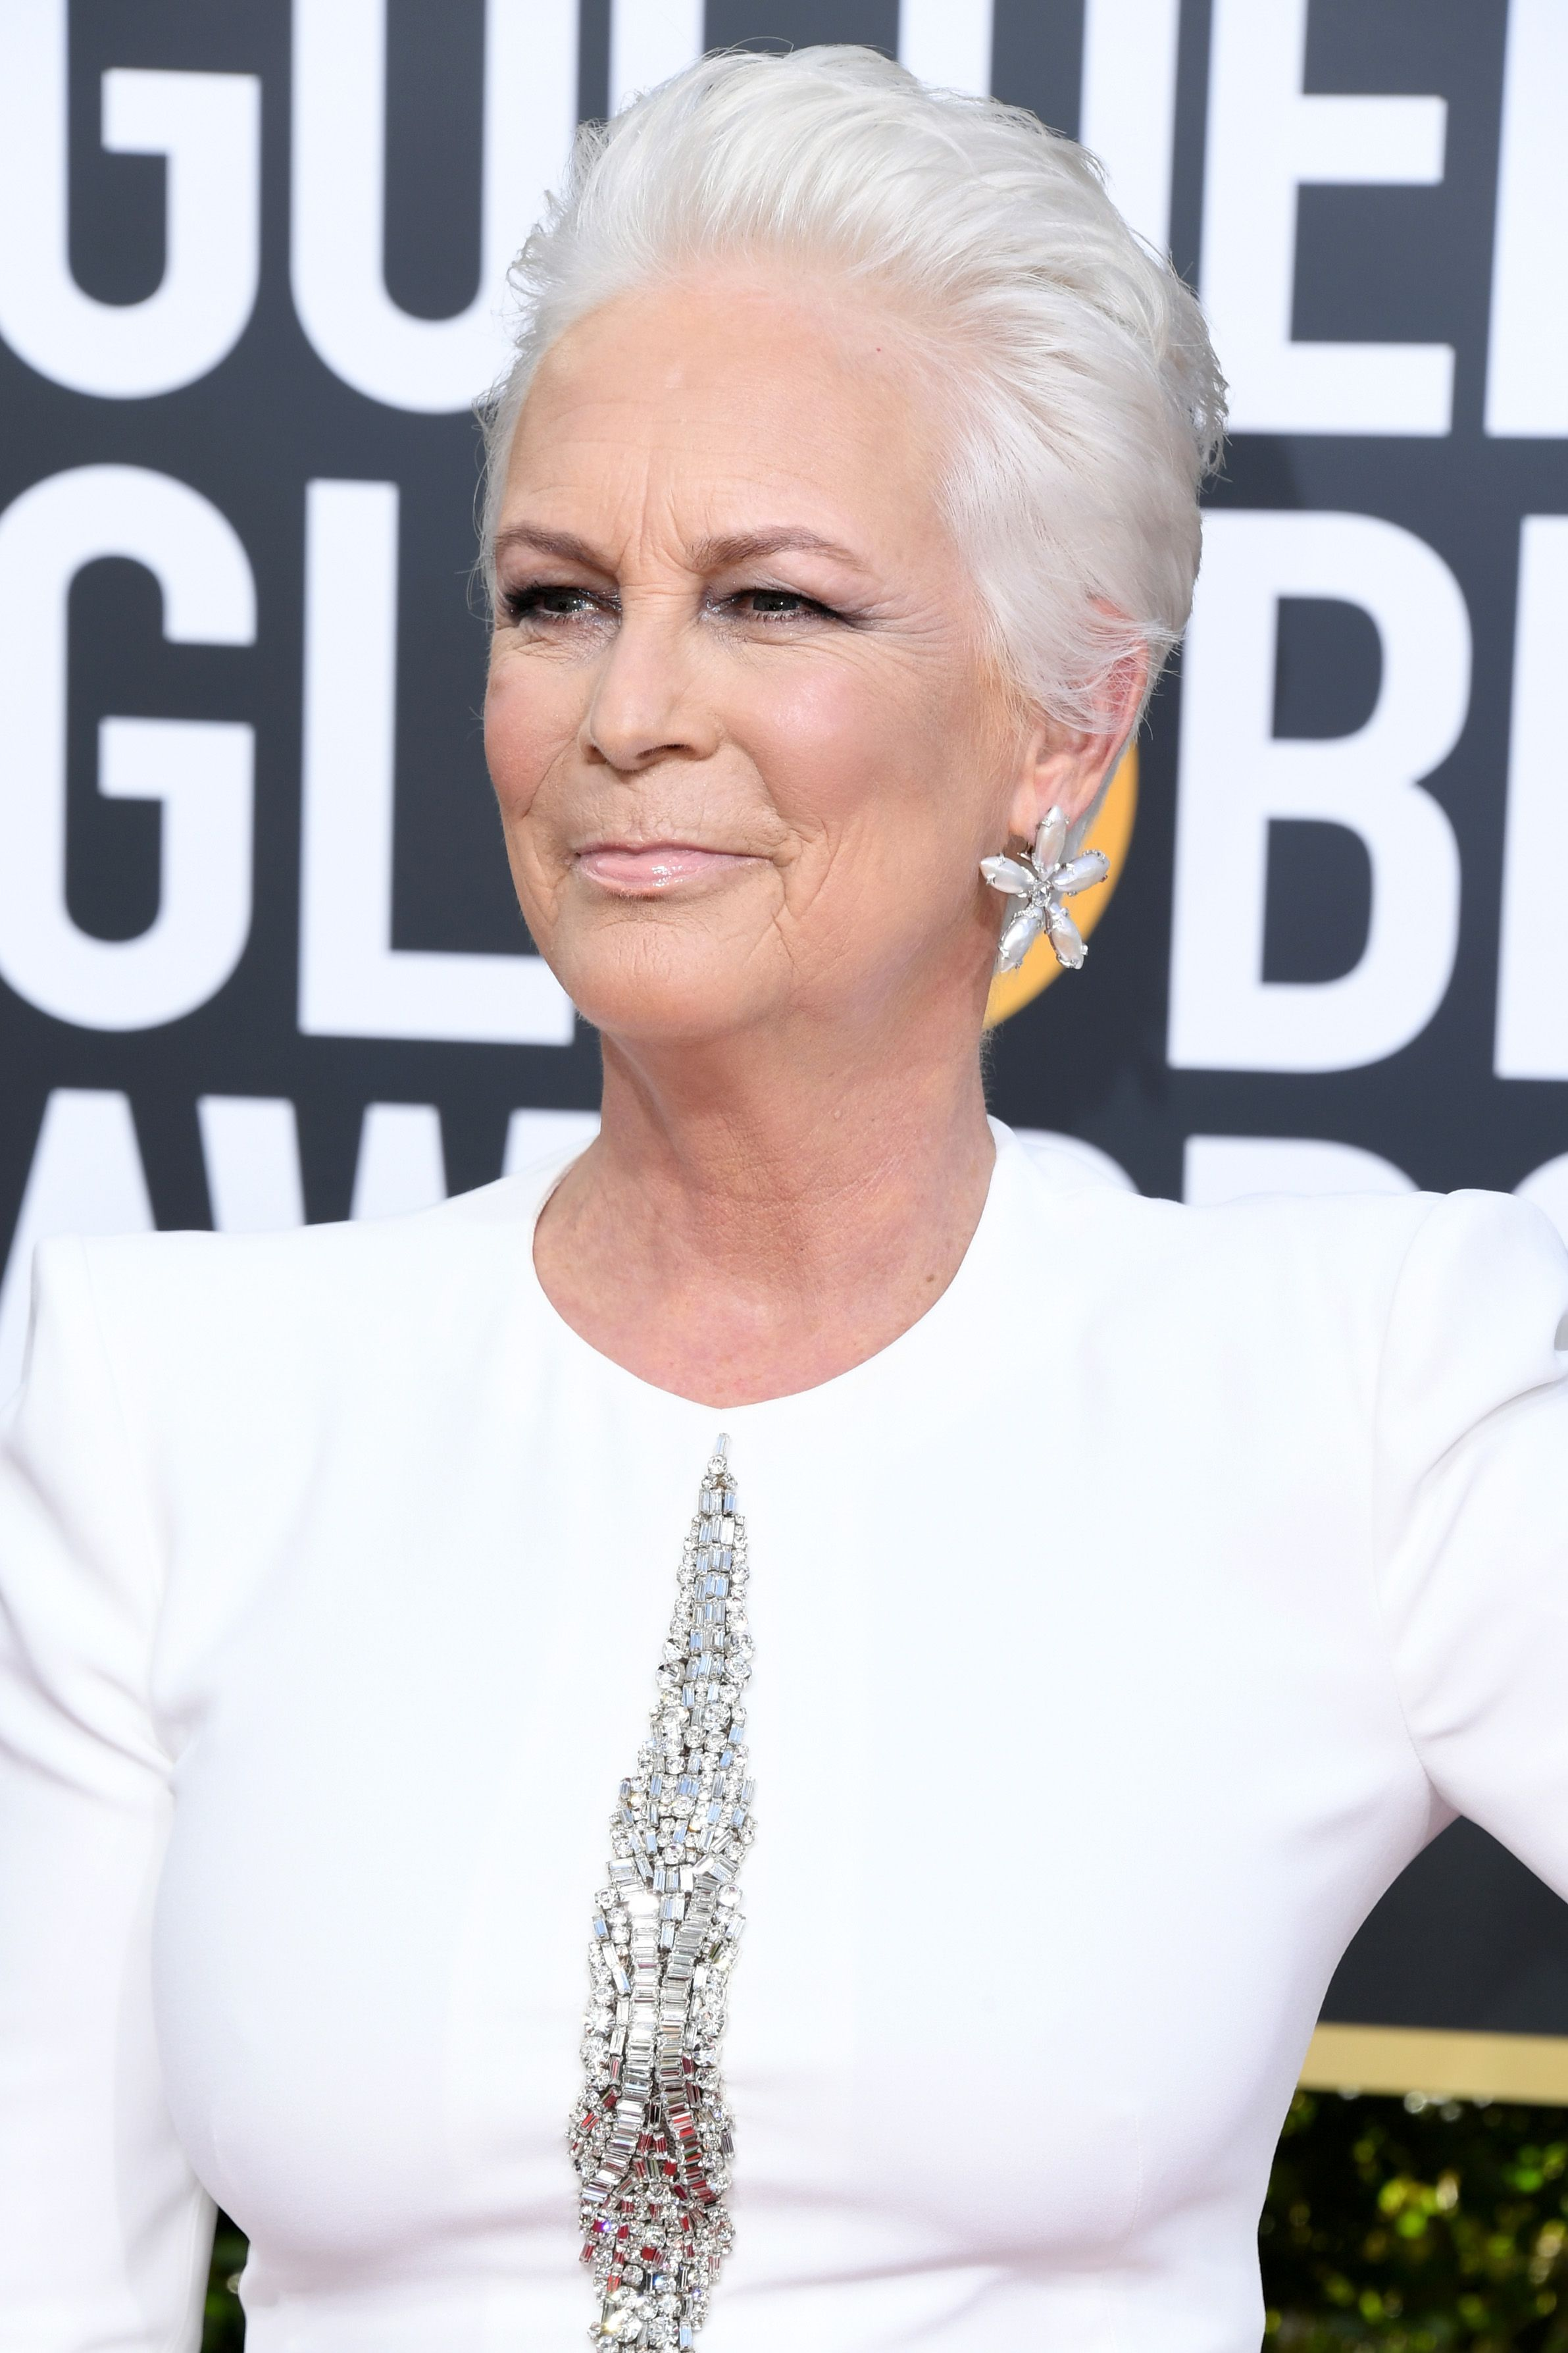 Jamie Lee Curtis at the Golden Globe Awards at The Beverly Hilton Hotel on January 6, 2019 | Photo: Getty Images